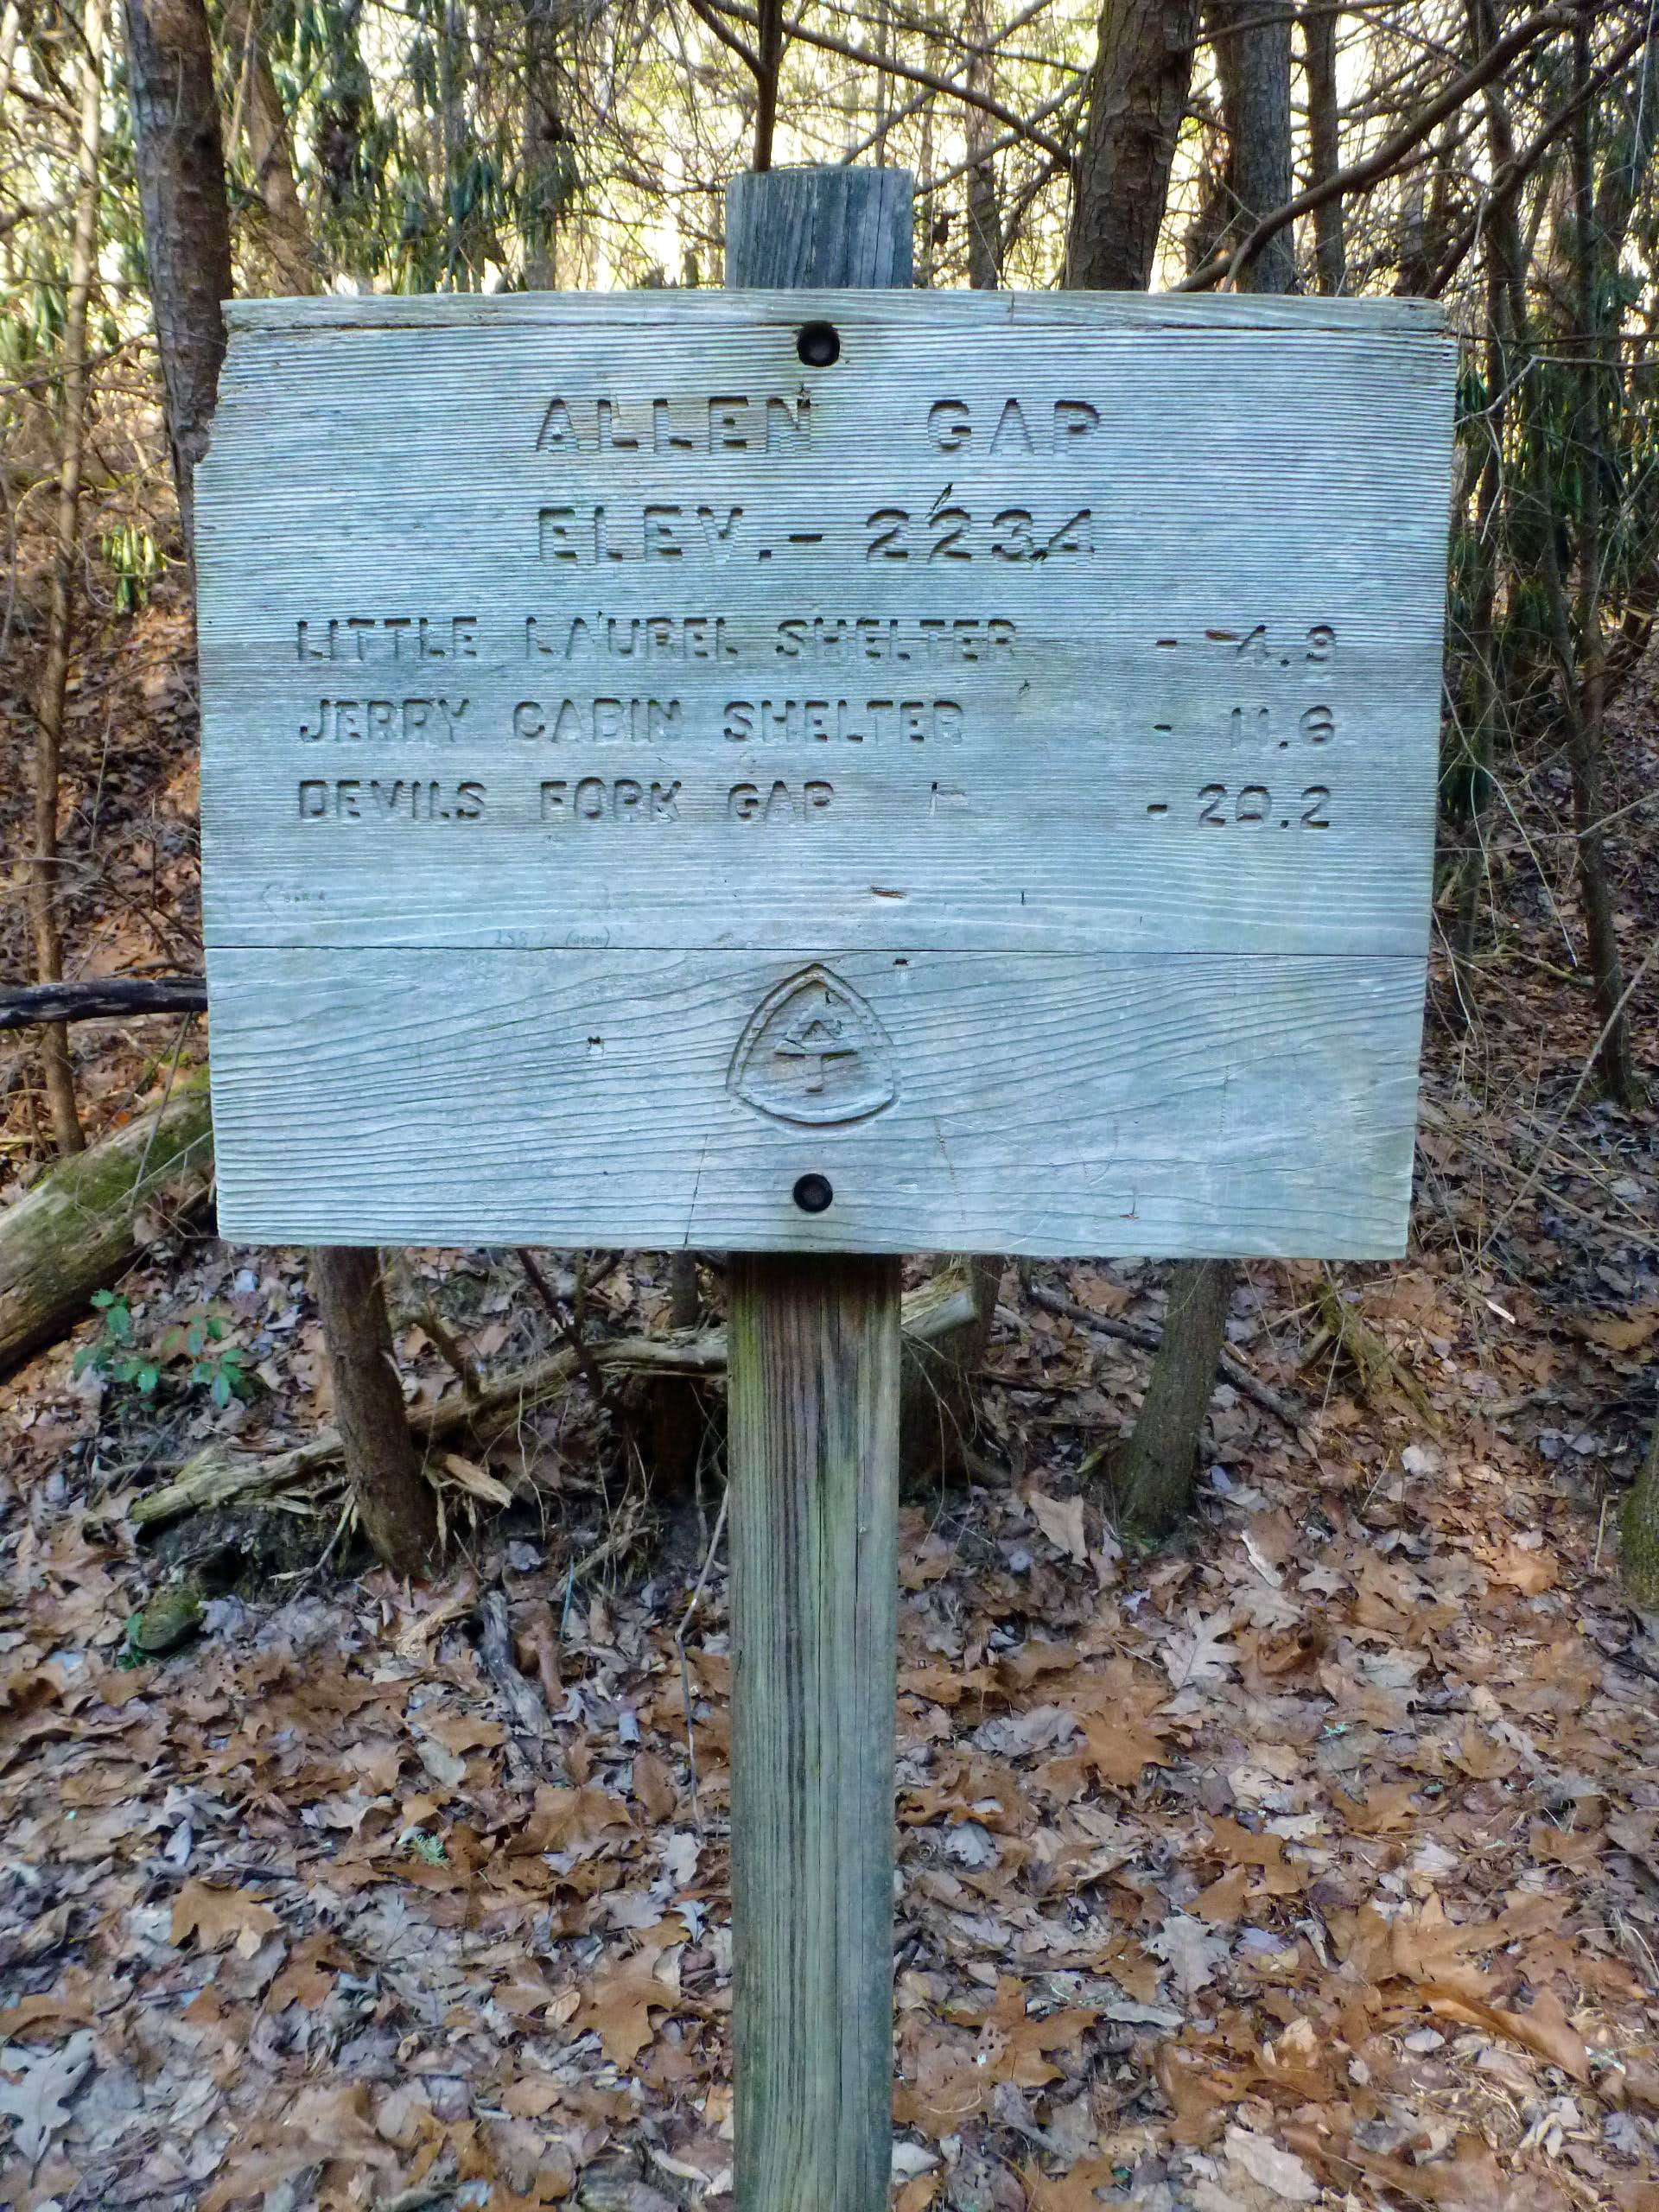 Appalachian Trail from Allen Gap